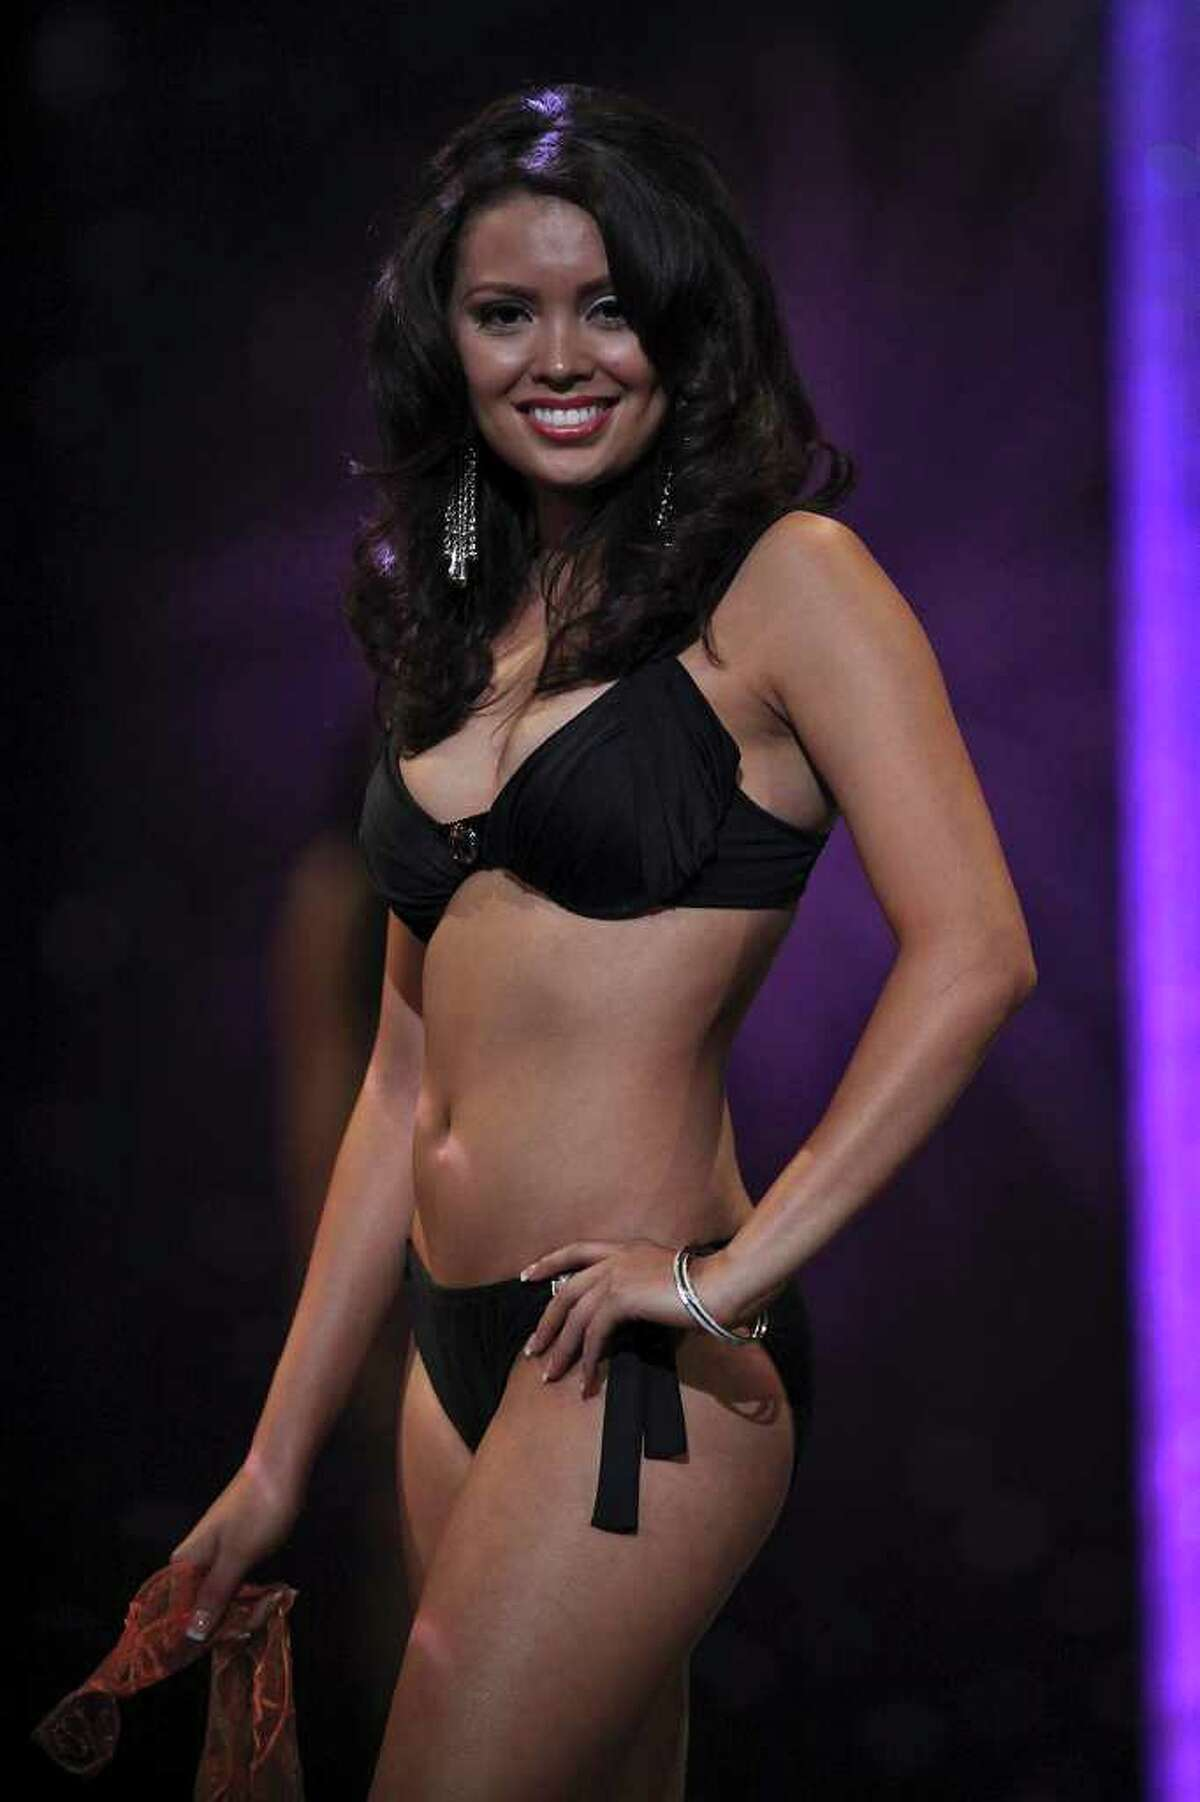 Miss San Antonio Domonique Ramirez, right, walks for the judges during the fitness competition for the second night of the Miss Texas Pageant preliminary competition at Texas Hall on the campus of the University of Texas at Arlington on Wednesday, June 29, 2011. LISA KRANTZ/lkrantz@express-news.net